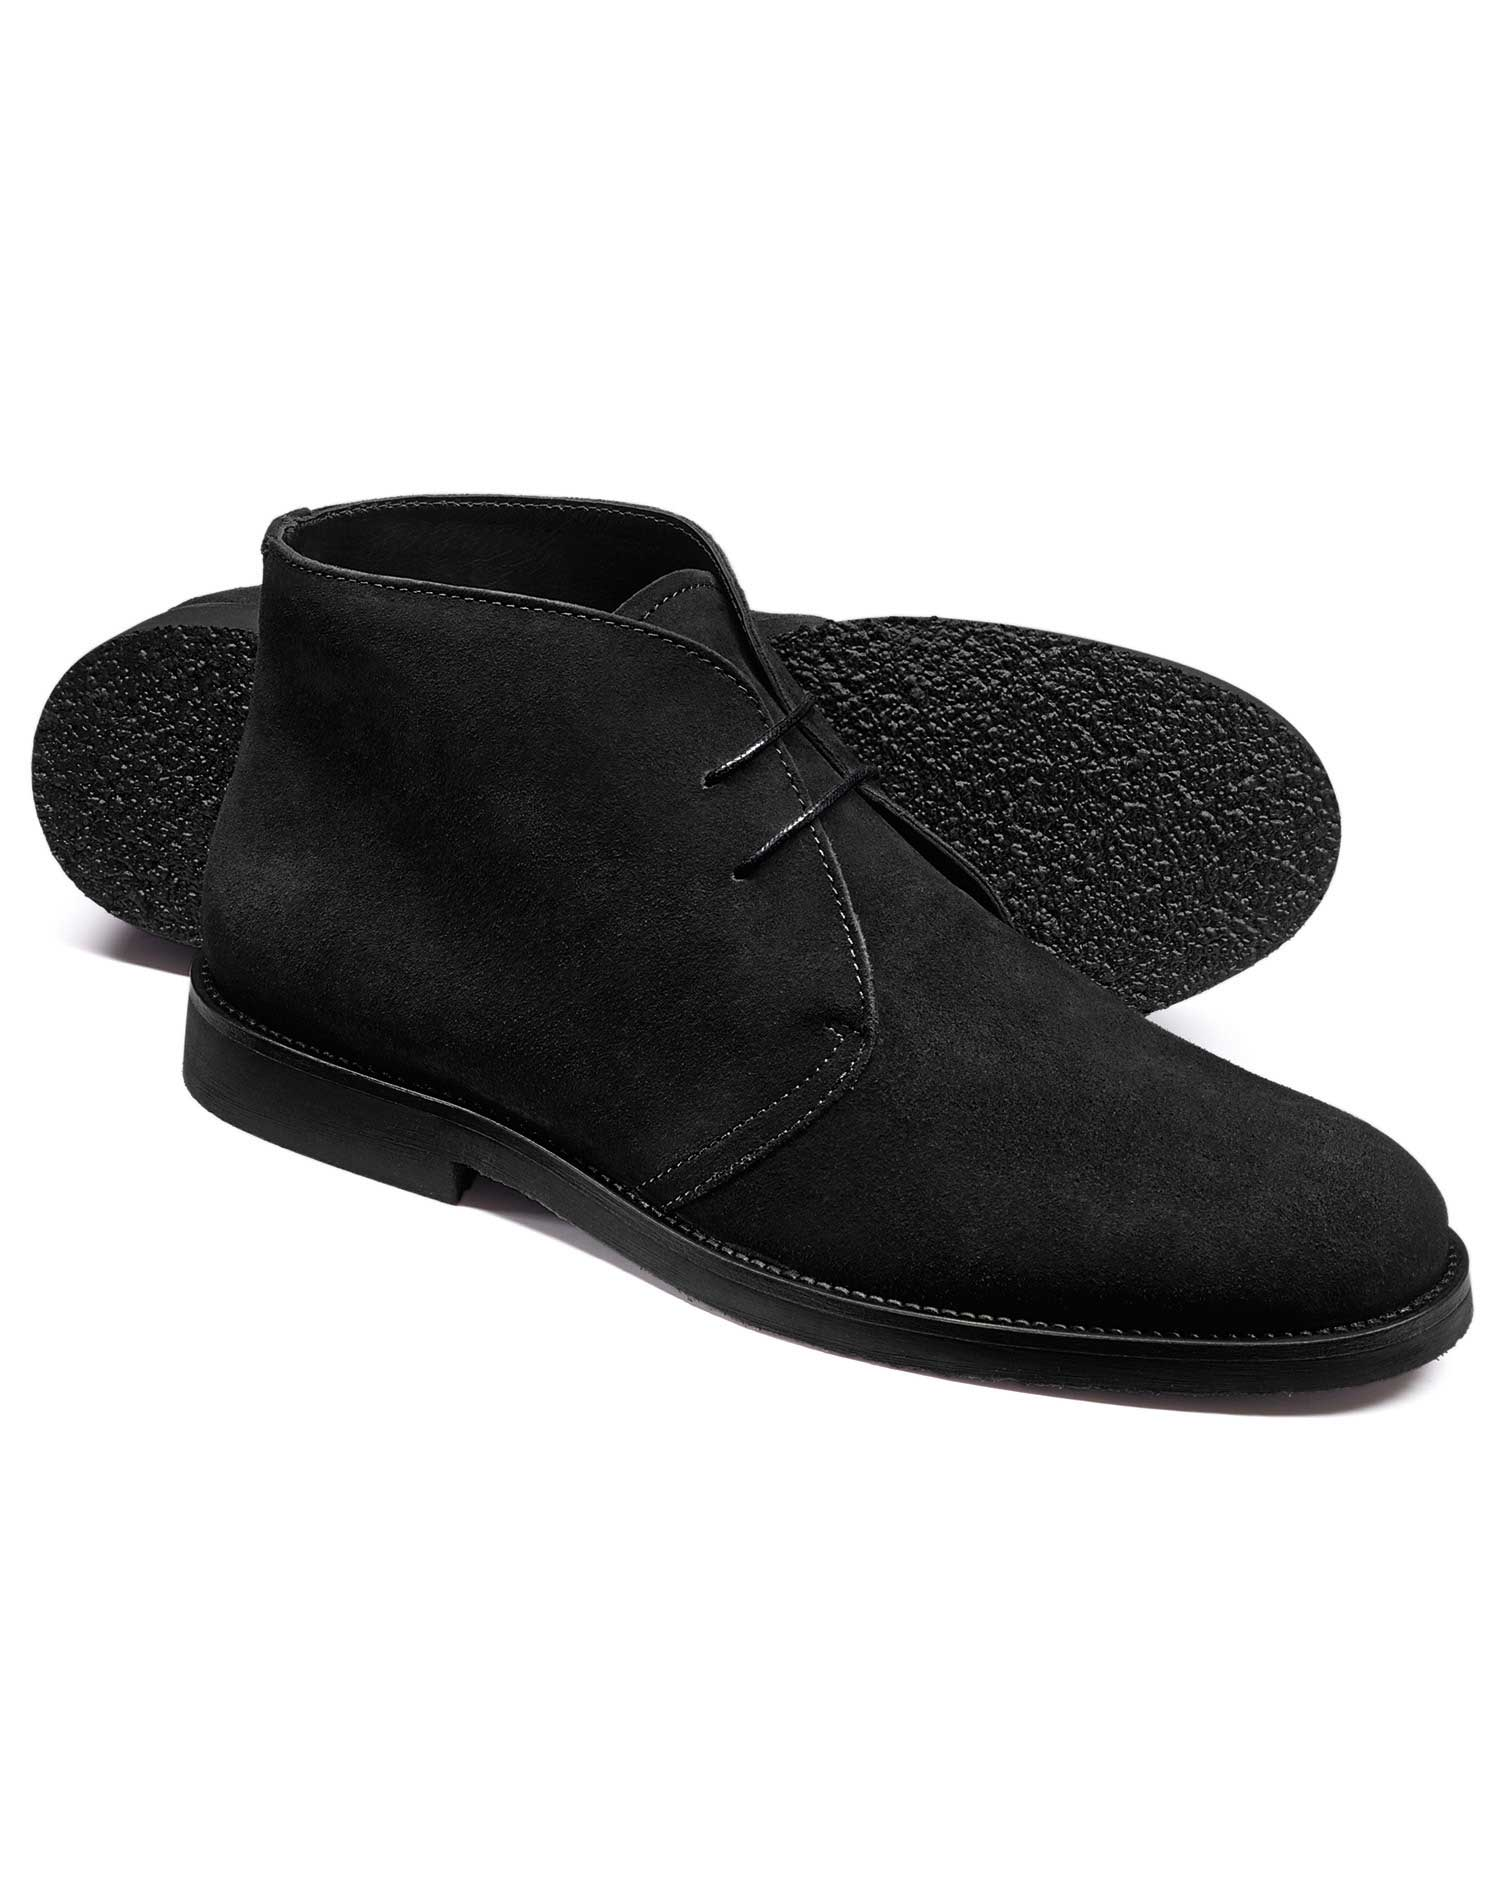 Black Suede Desert Boots Size 9 R by Charles Tyrwhitt